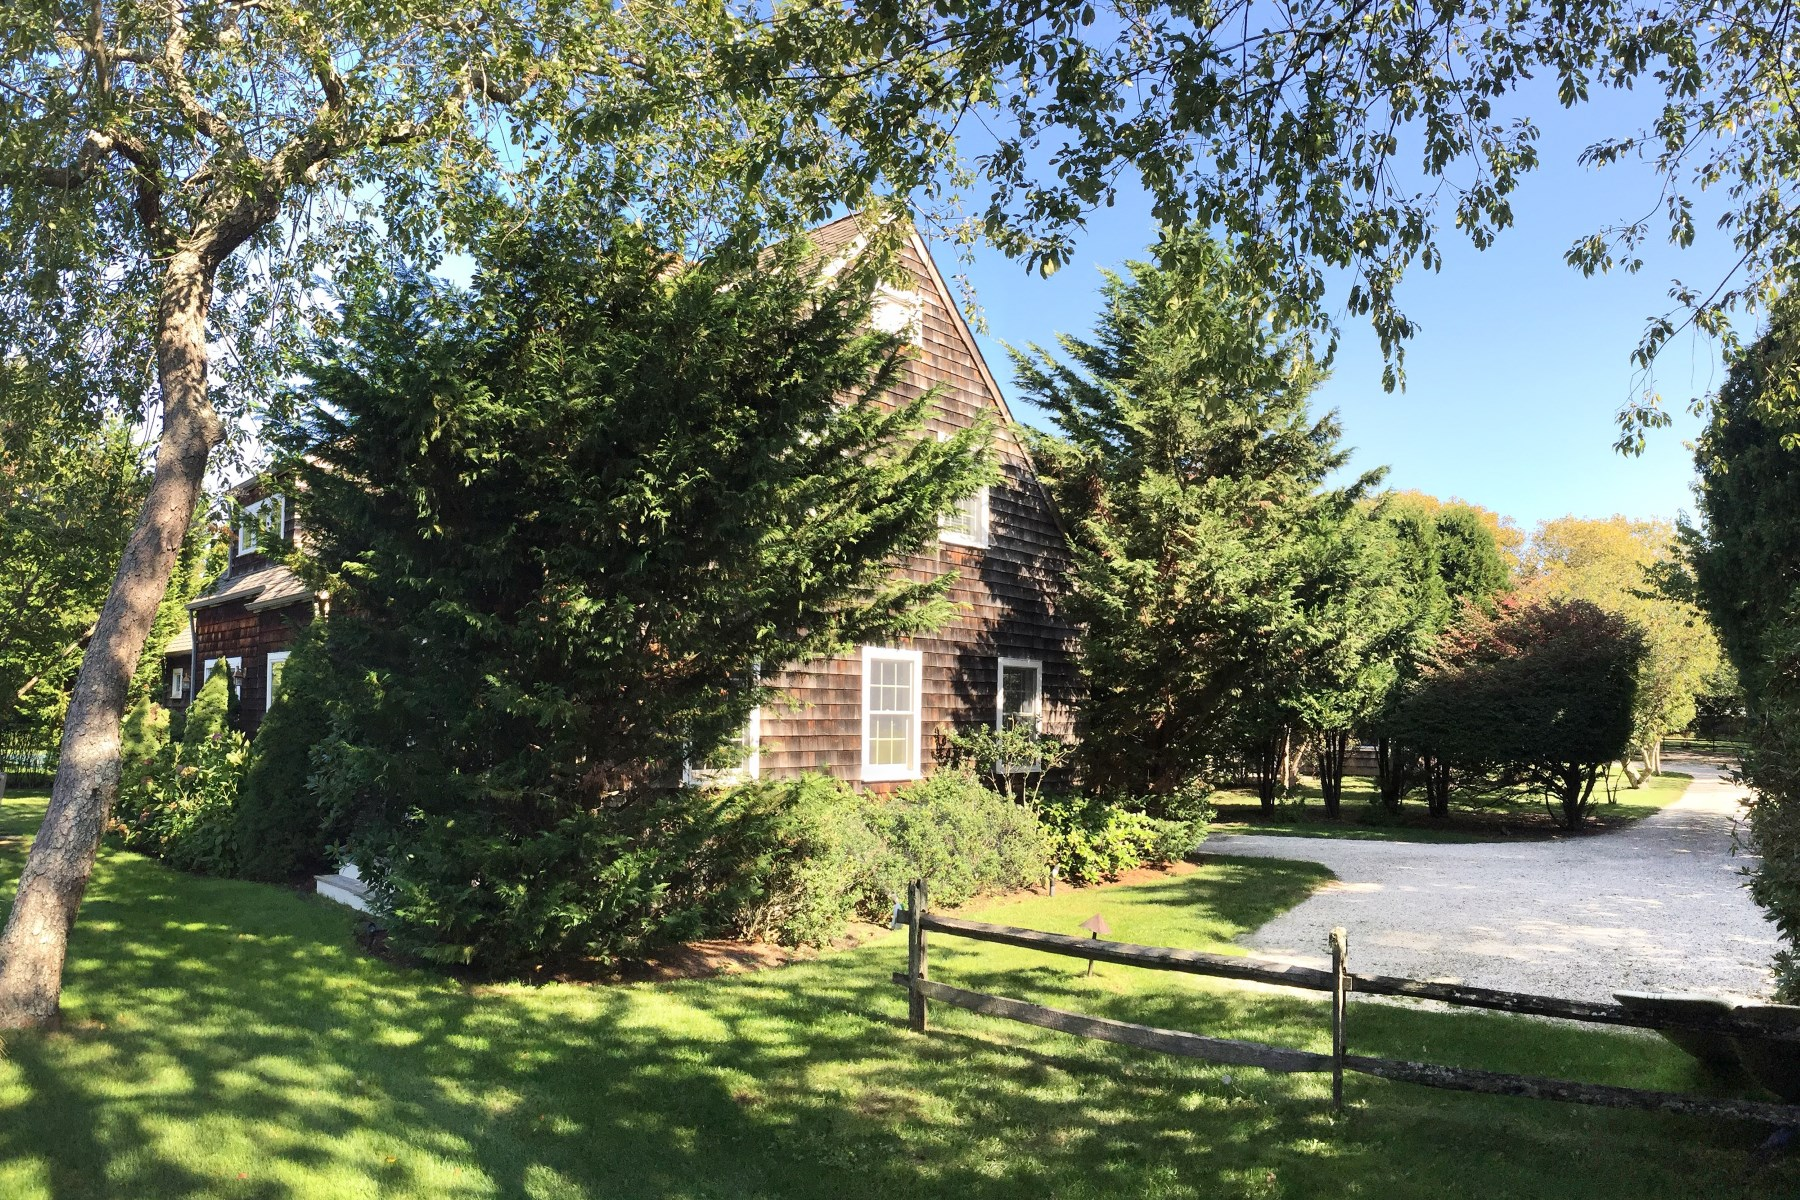 Single Family Home for Rent at Private Hedges Lane Cape 86B Hedges Lane Amagansett, New York 11930 United States